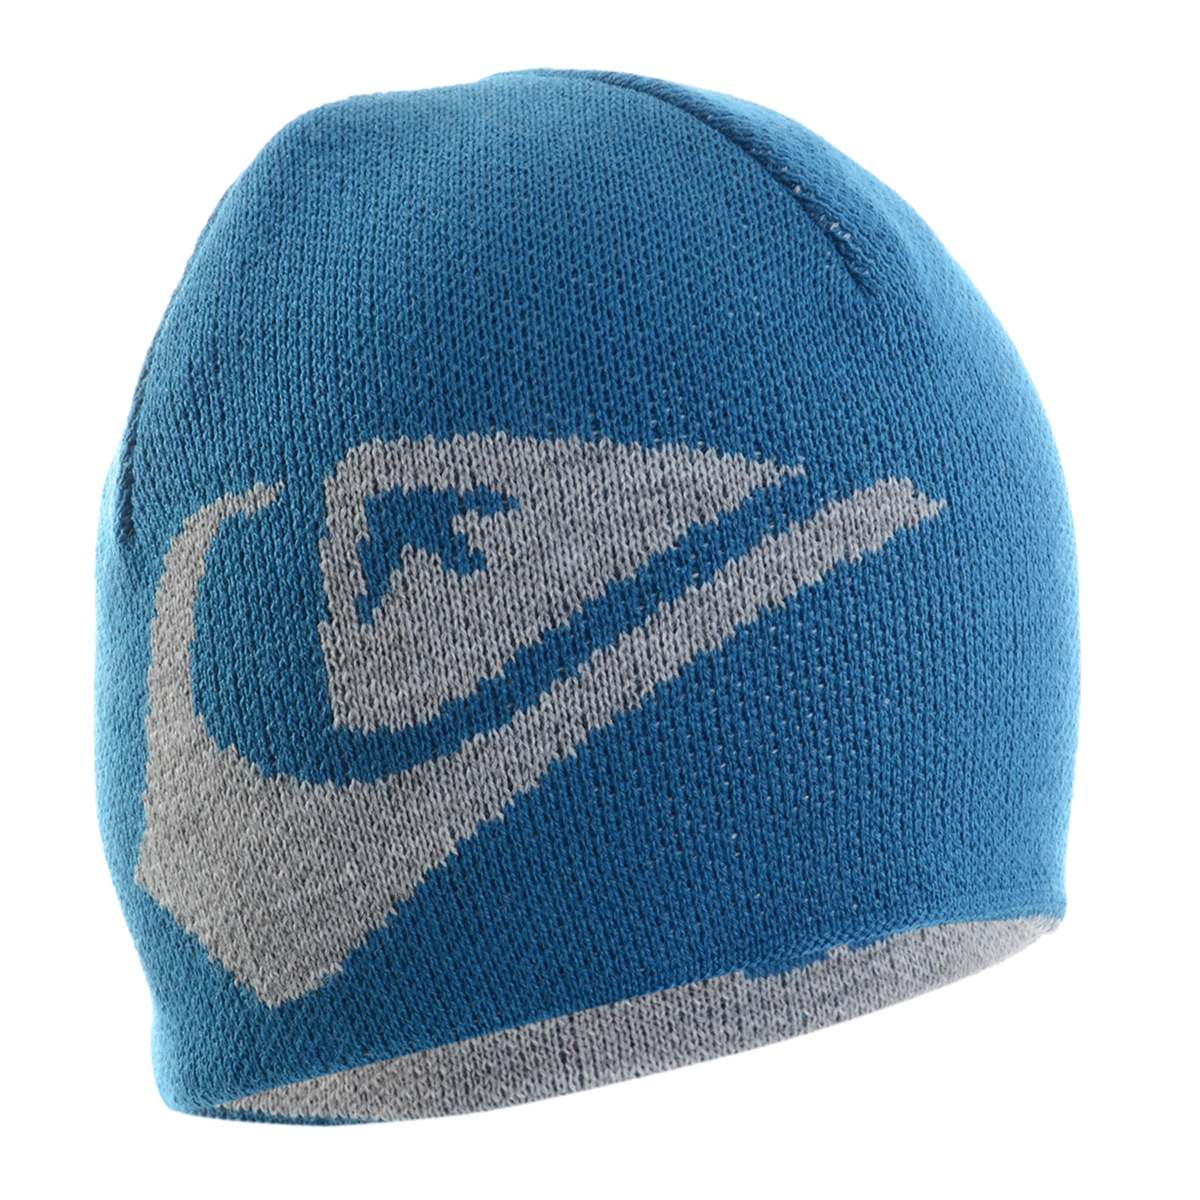 9584a328c65c7 Gorro Masculino Quiksilver Feel The Heat Dupla Face - Cor  A - R  49 ...